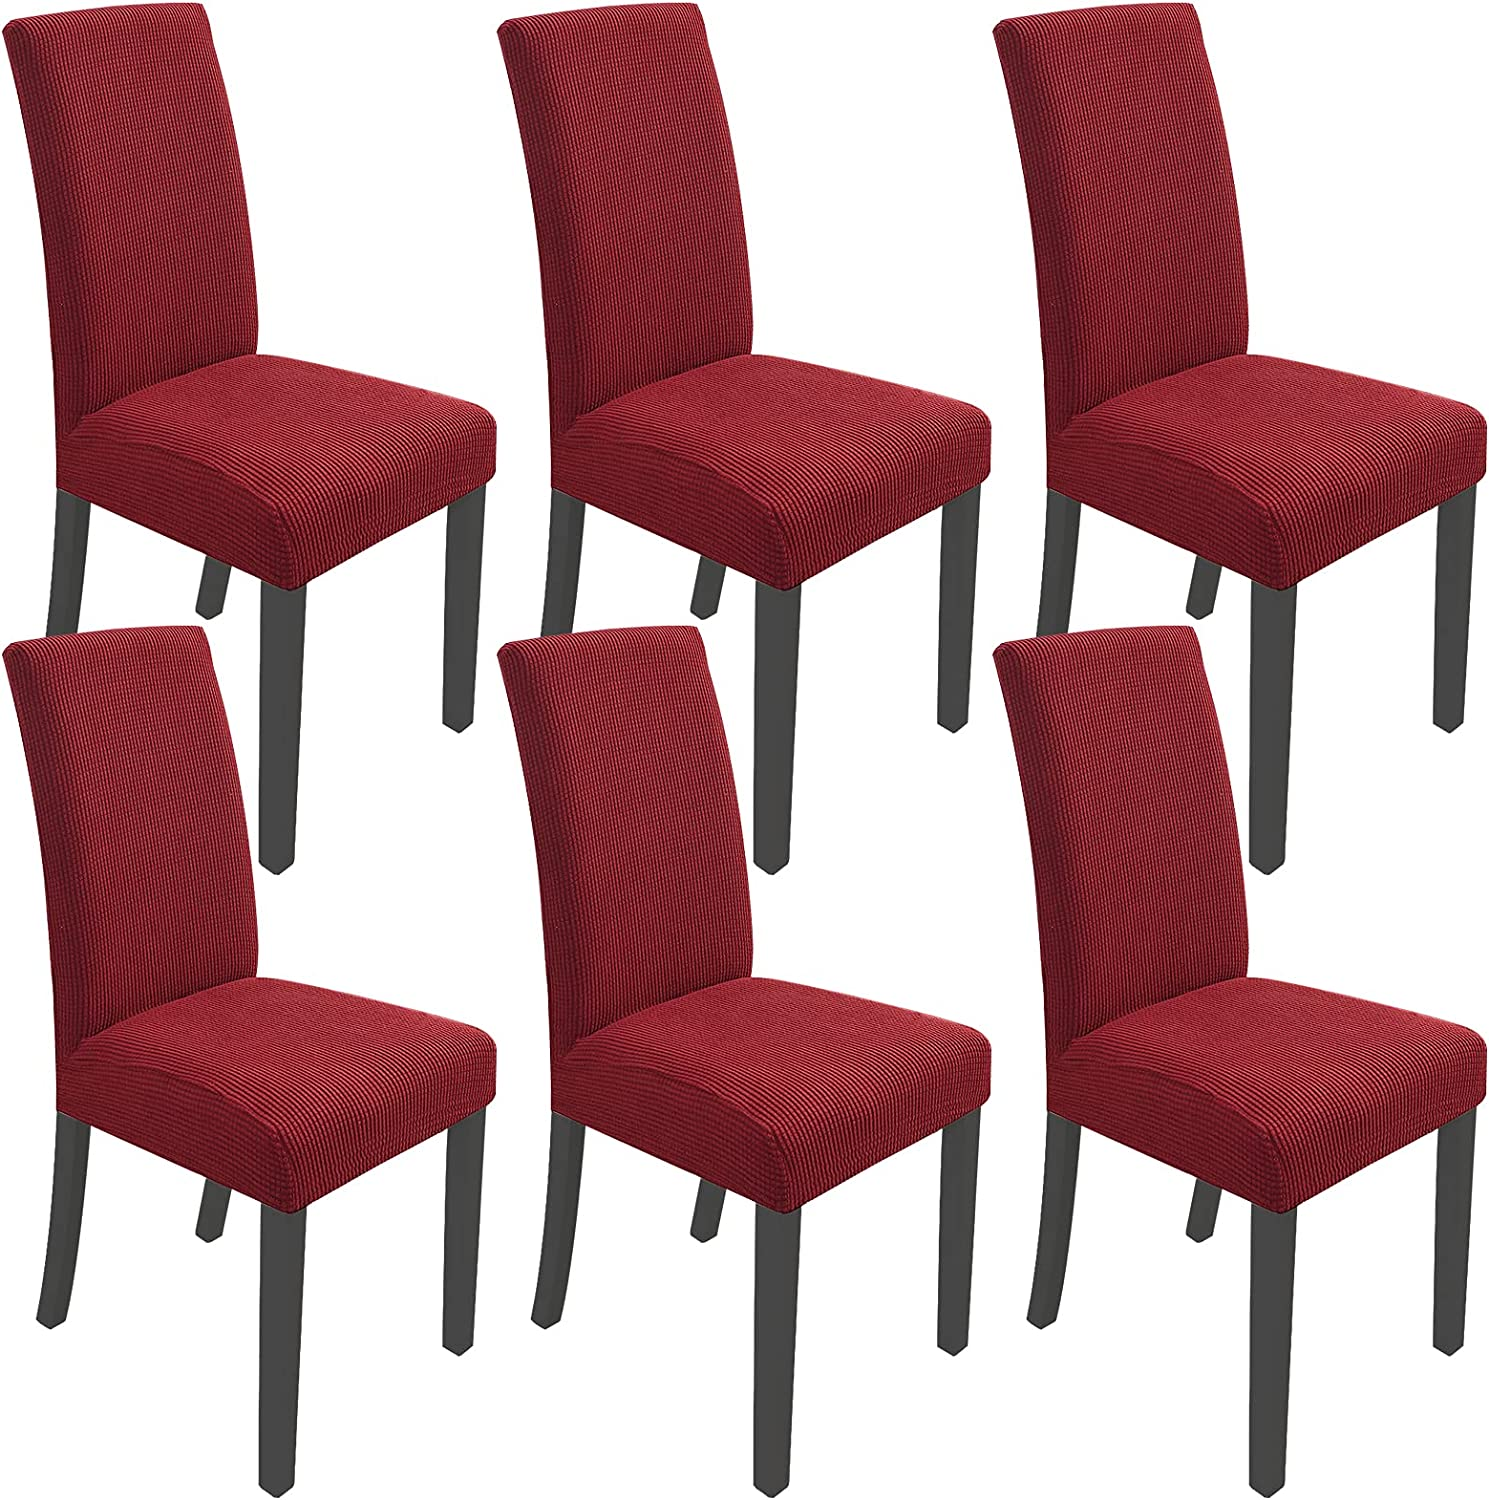 AQIQI Dining Chair Covers Stretch Cov Back Ranking TOP20 High Protective Tulsa Mall